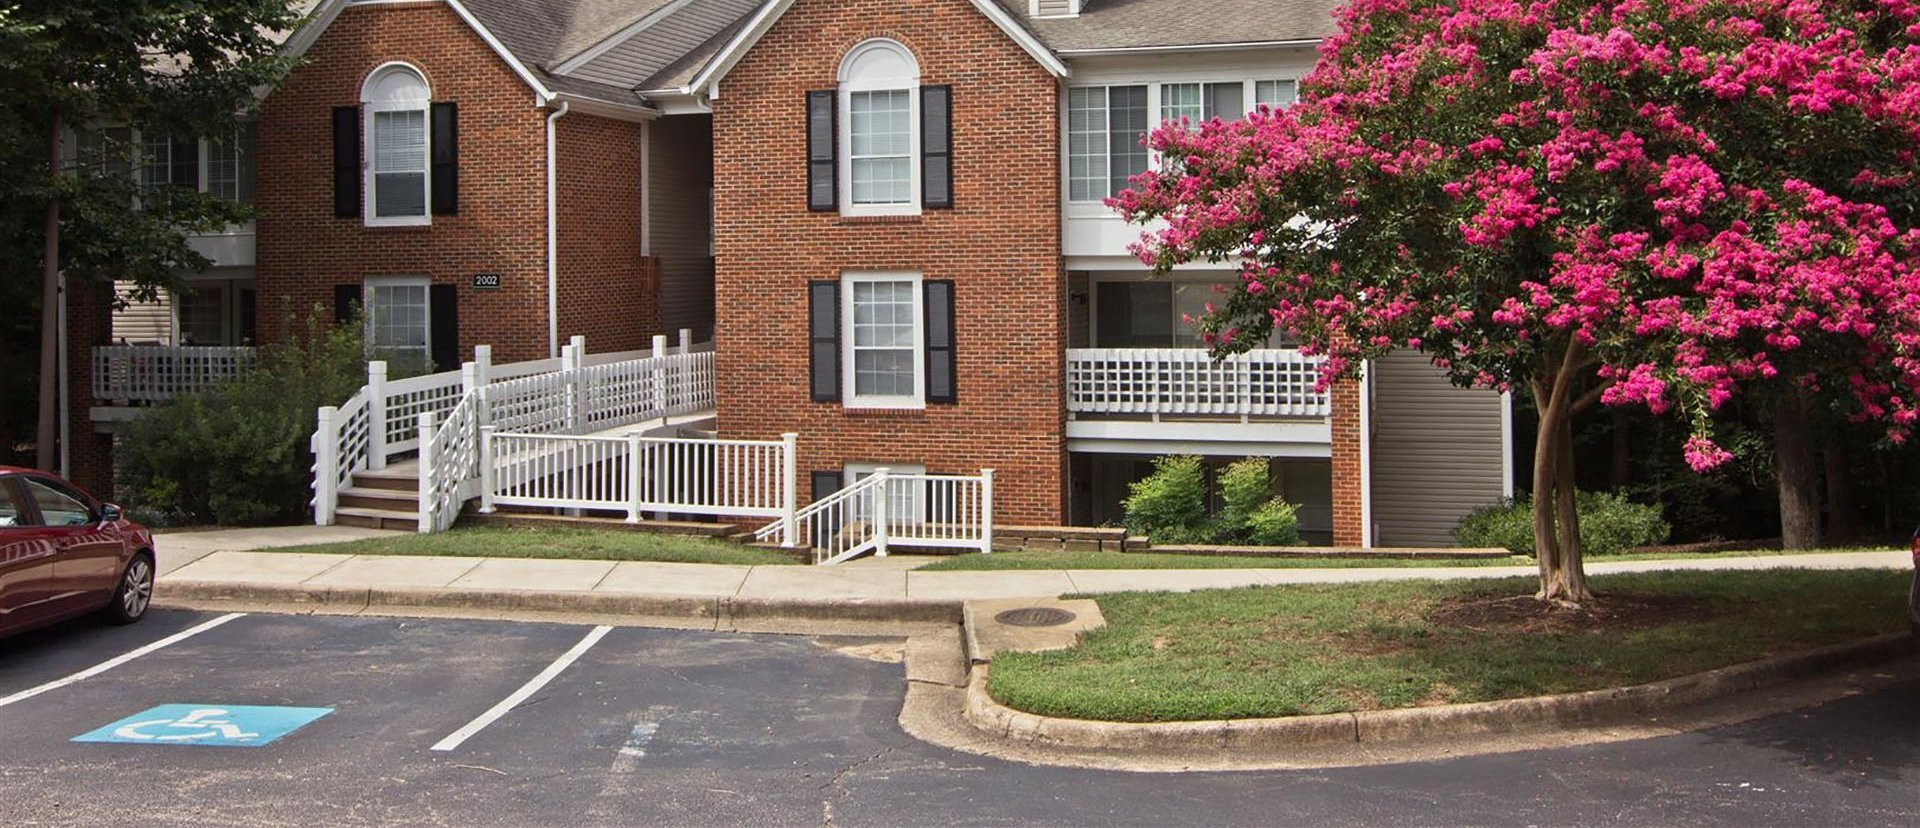 Best Apartments For Rent Richmond Va The Timbers Apartments With Pictures